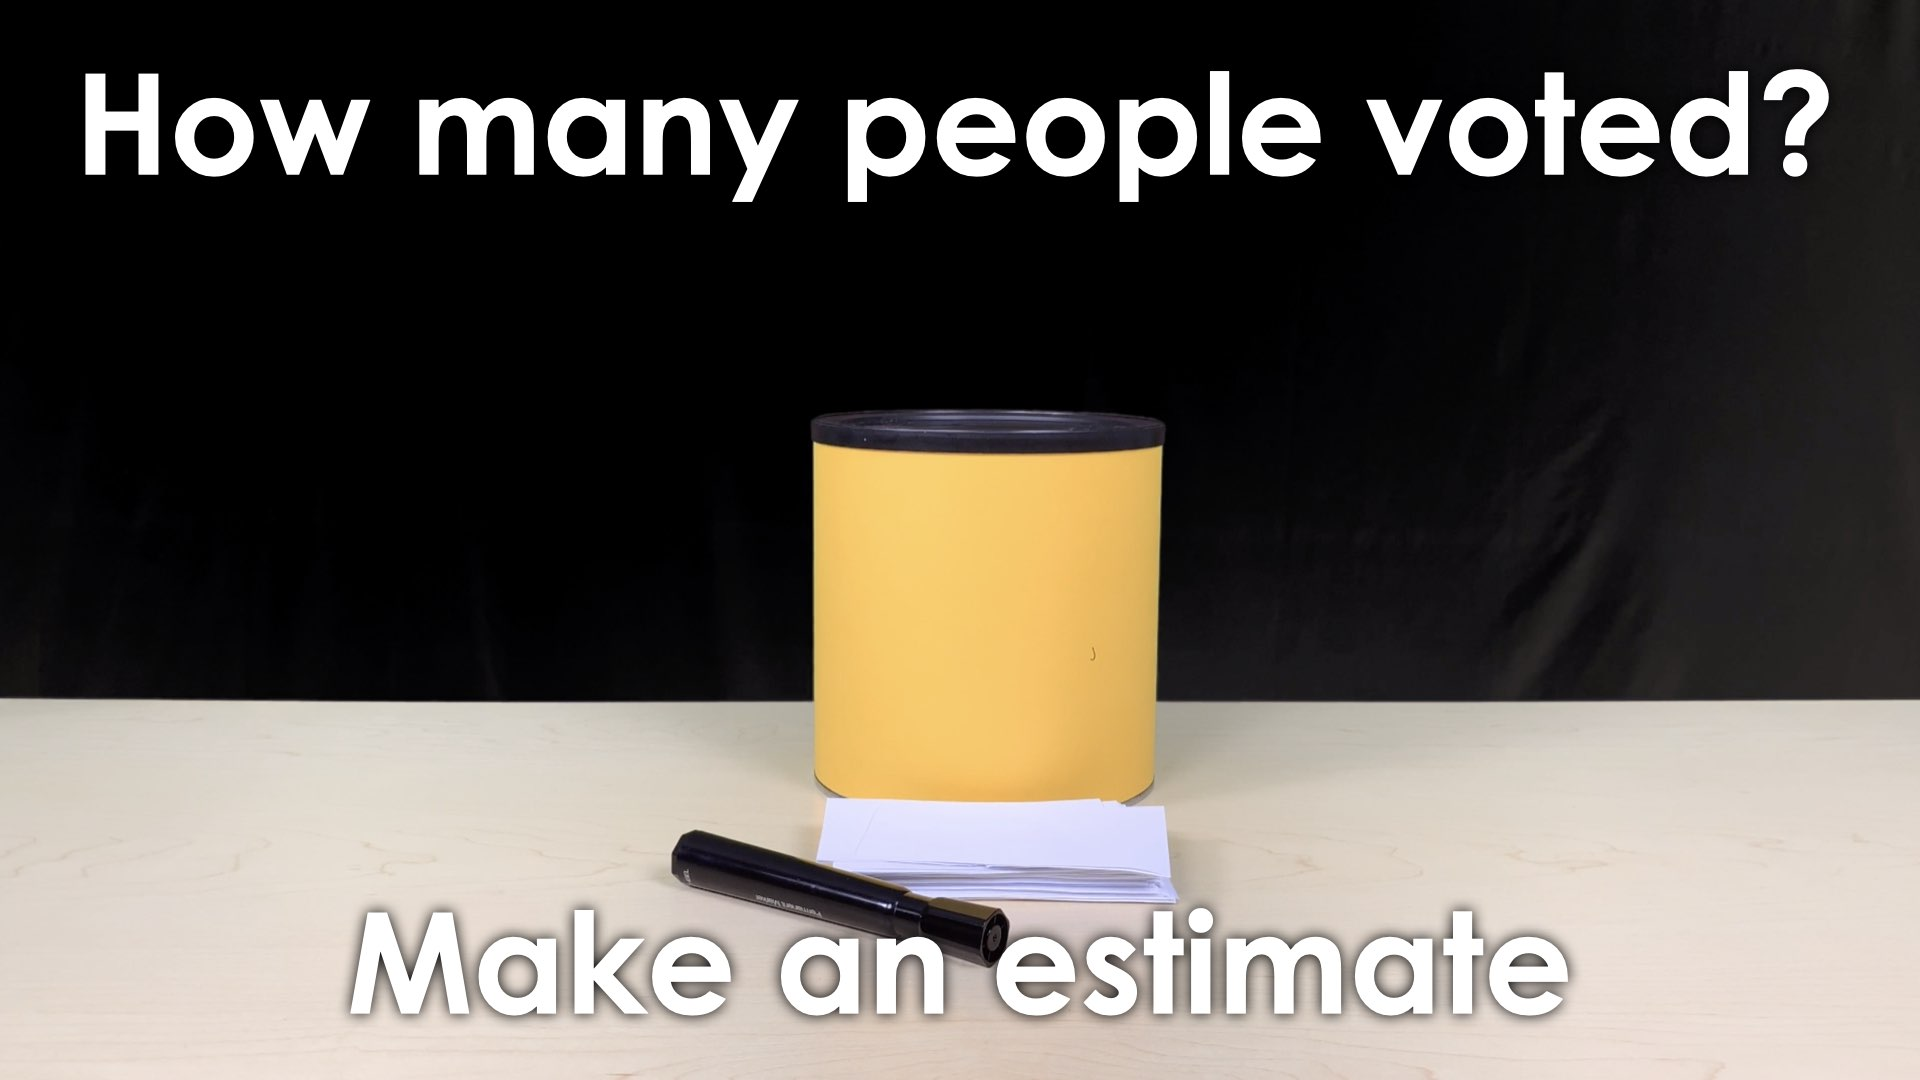 MMM Voting Booth Lesson.014 SPARK Make an estimate (1)